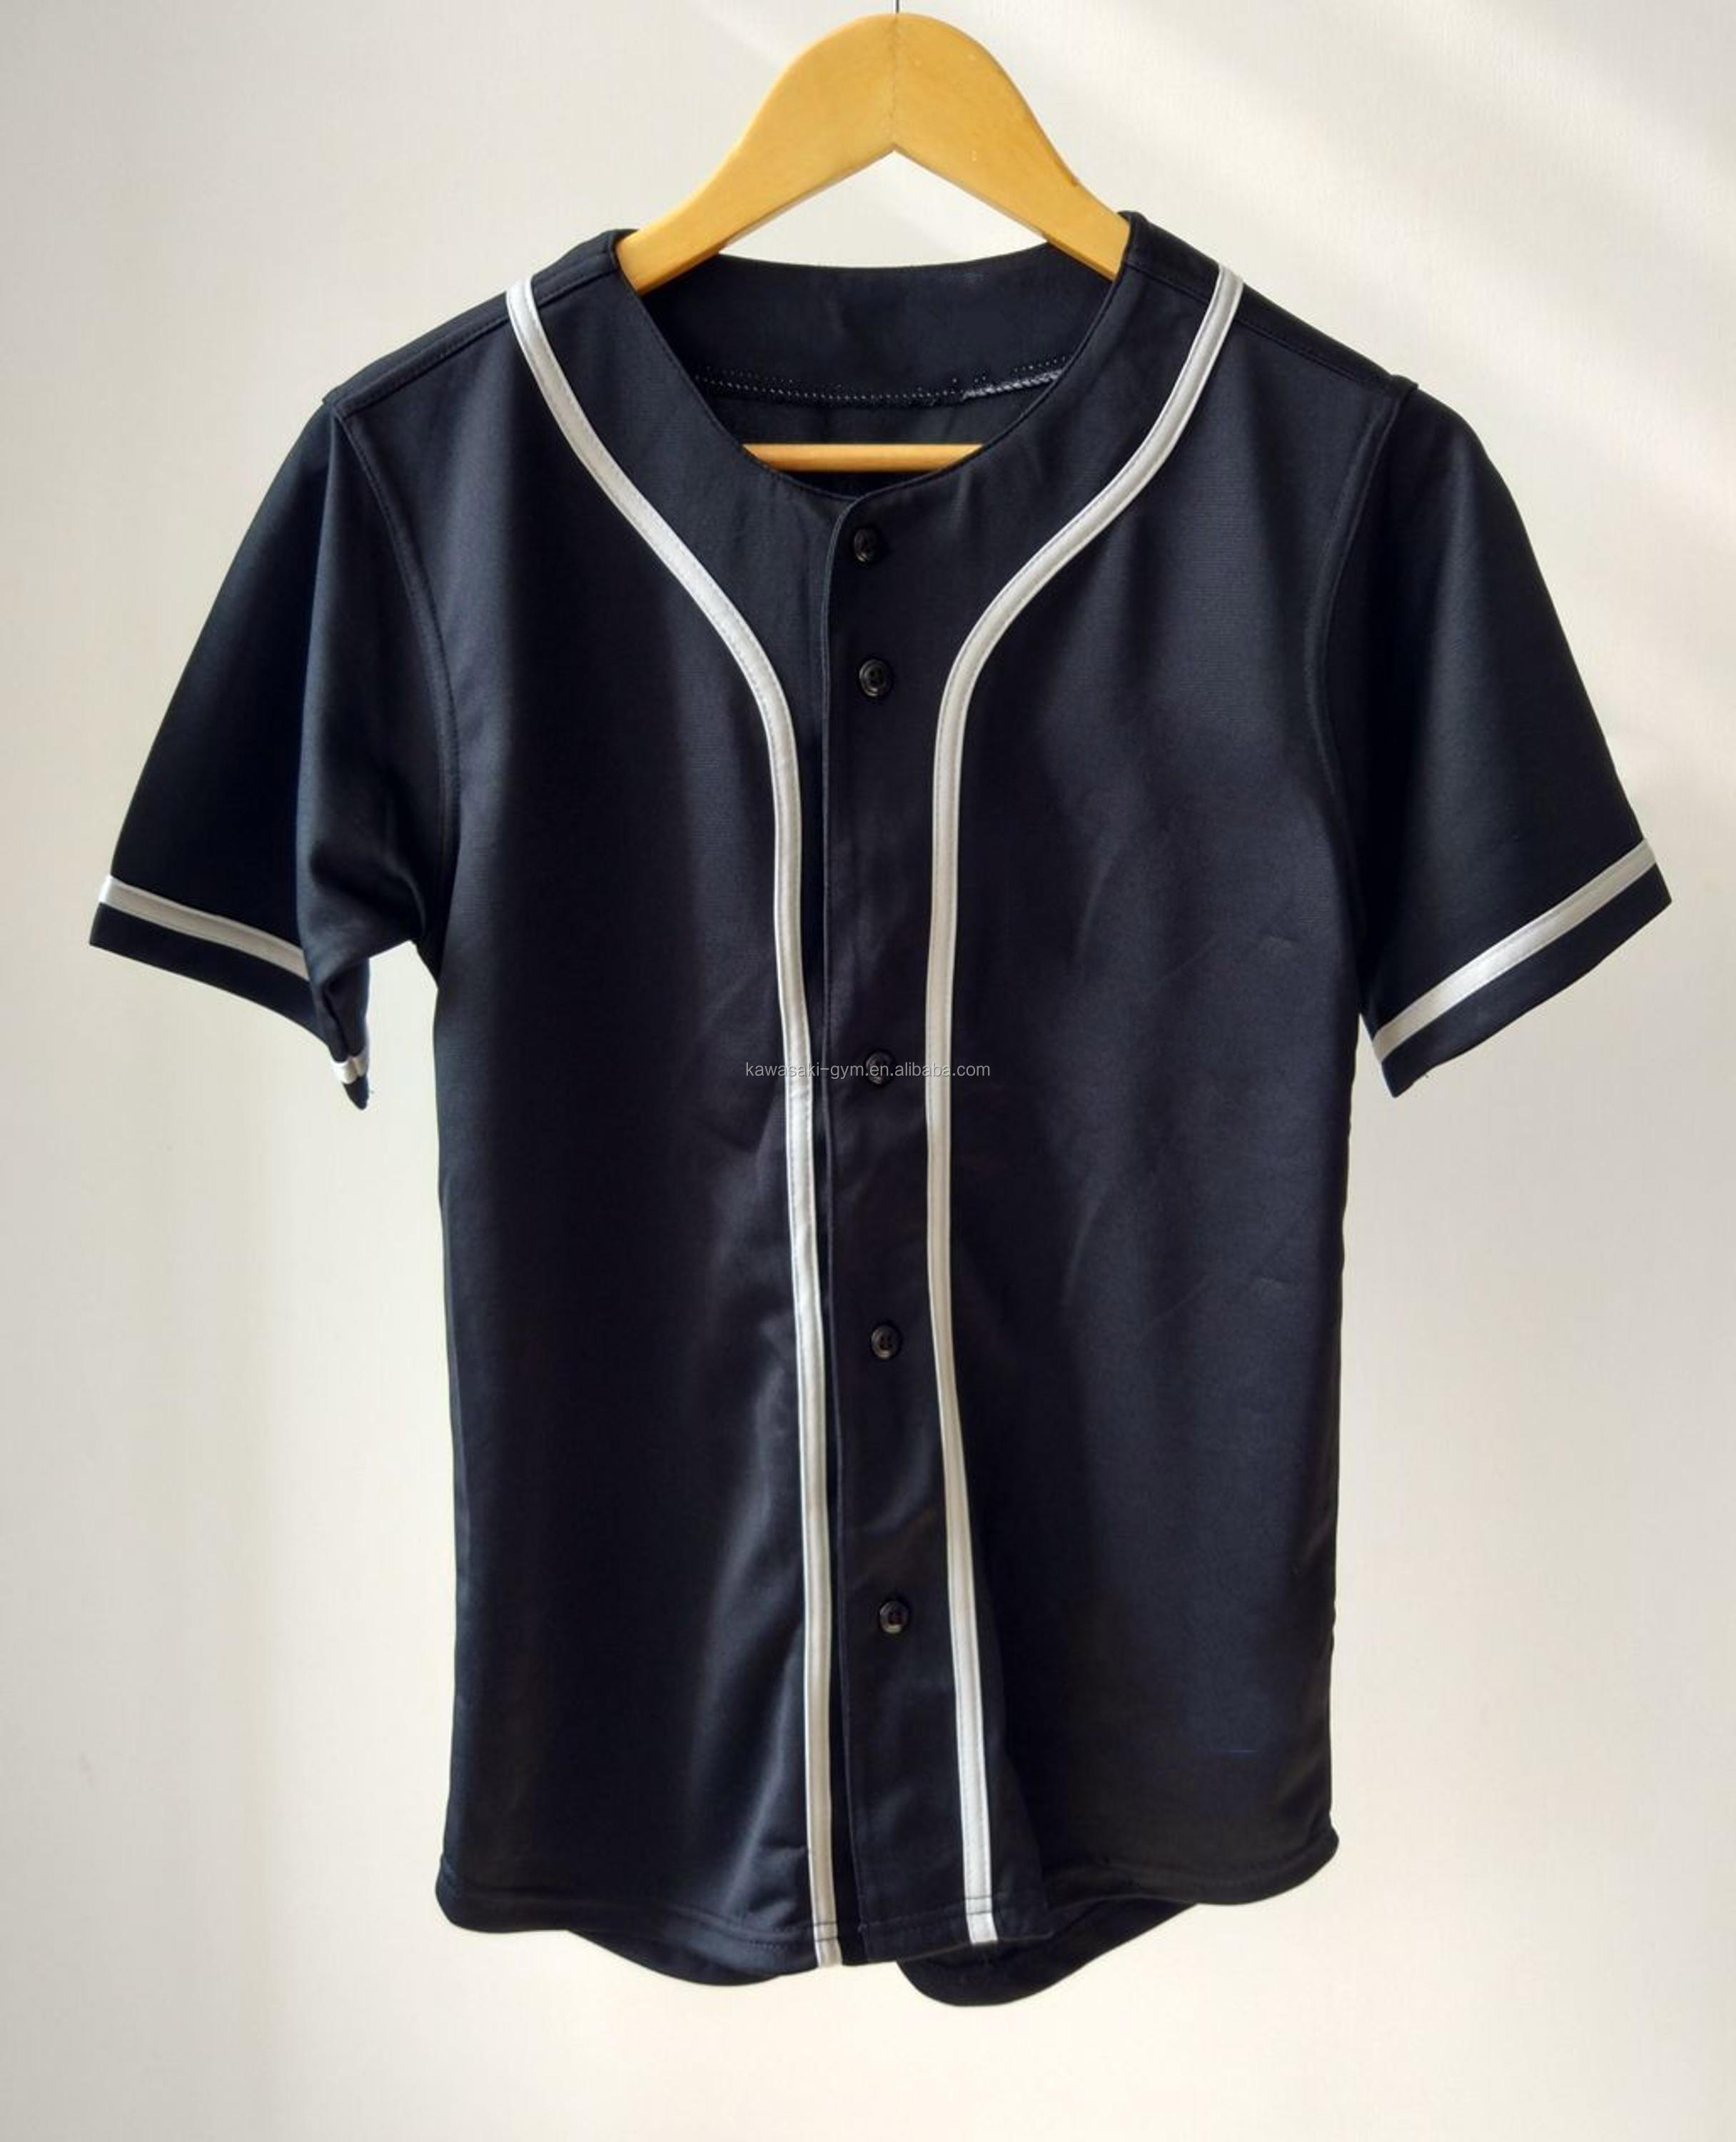 high quality Custom black sewing pattern baseball jersey